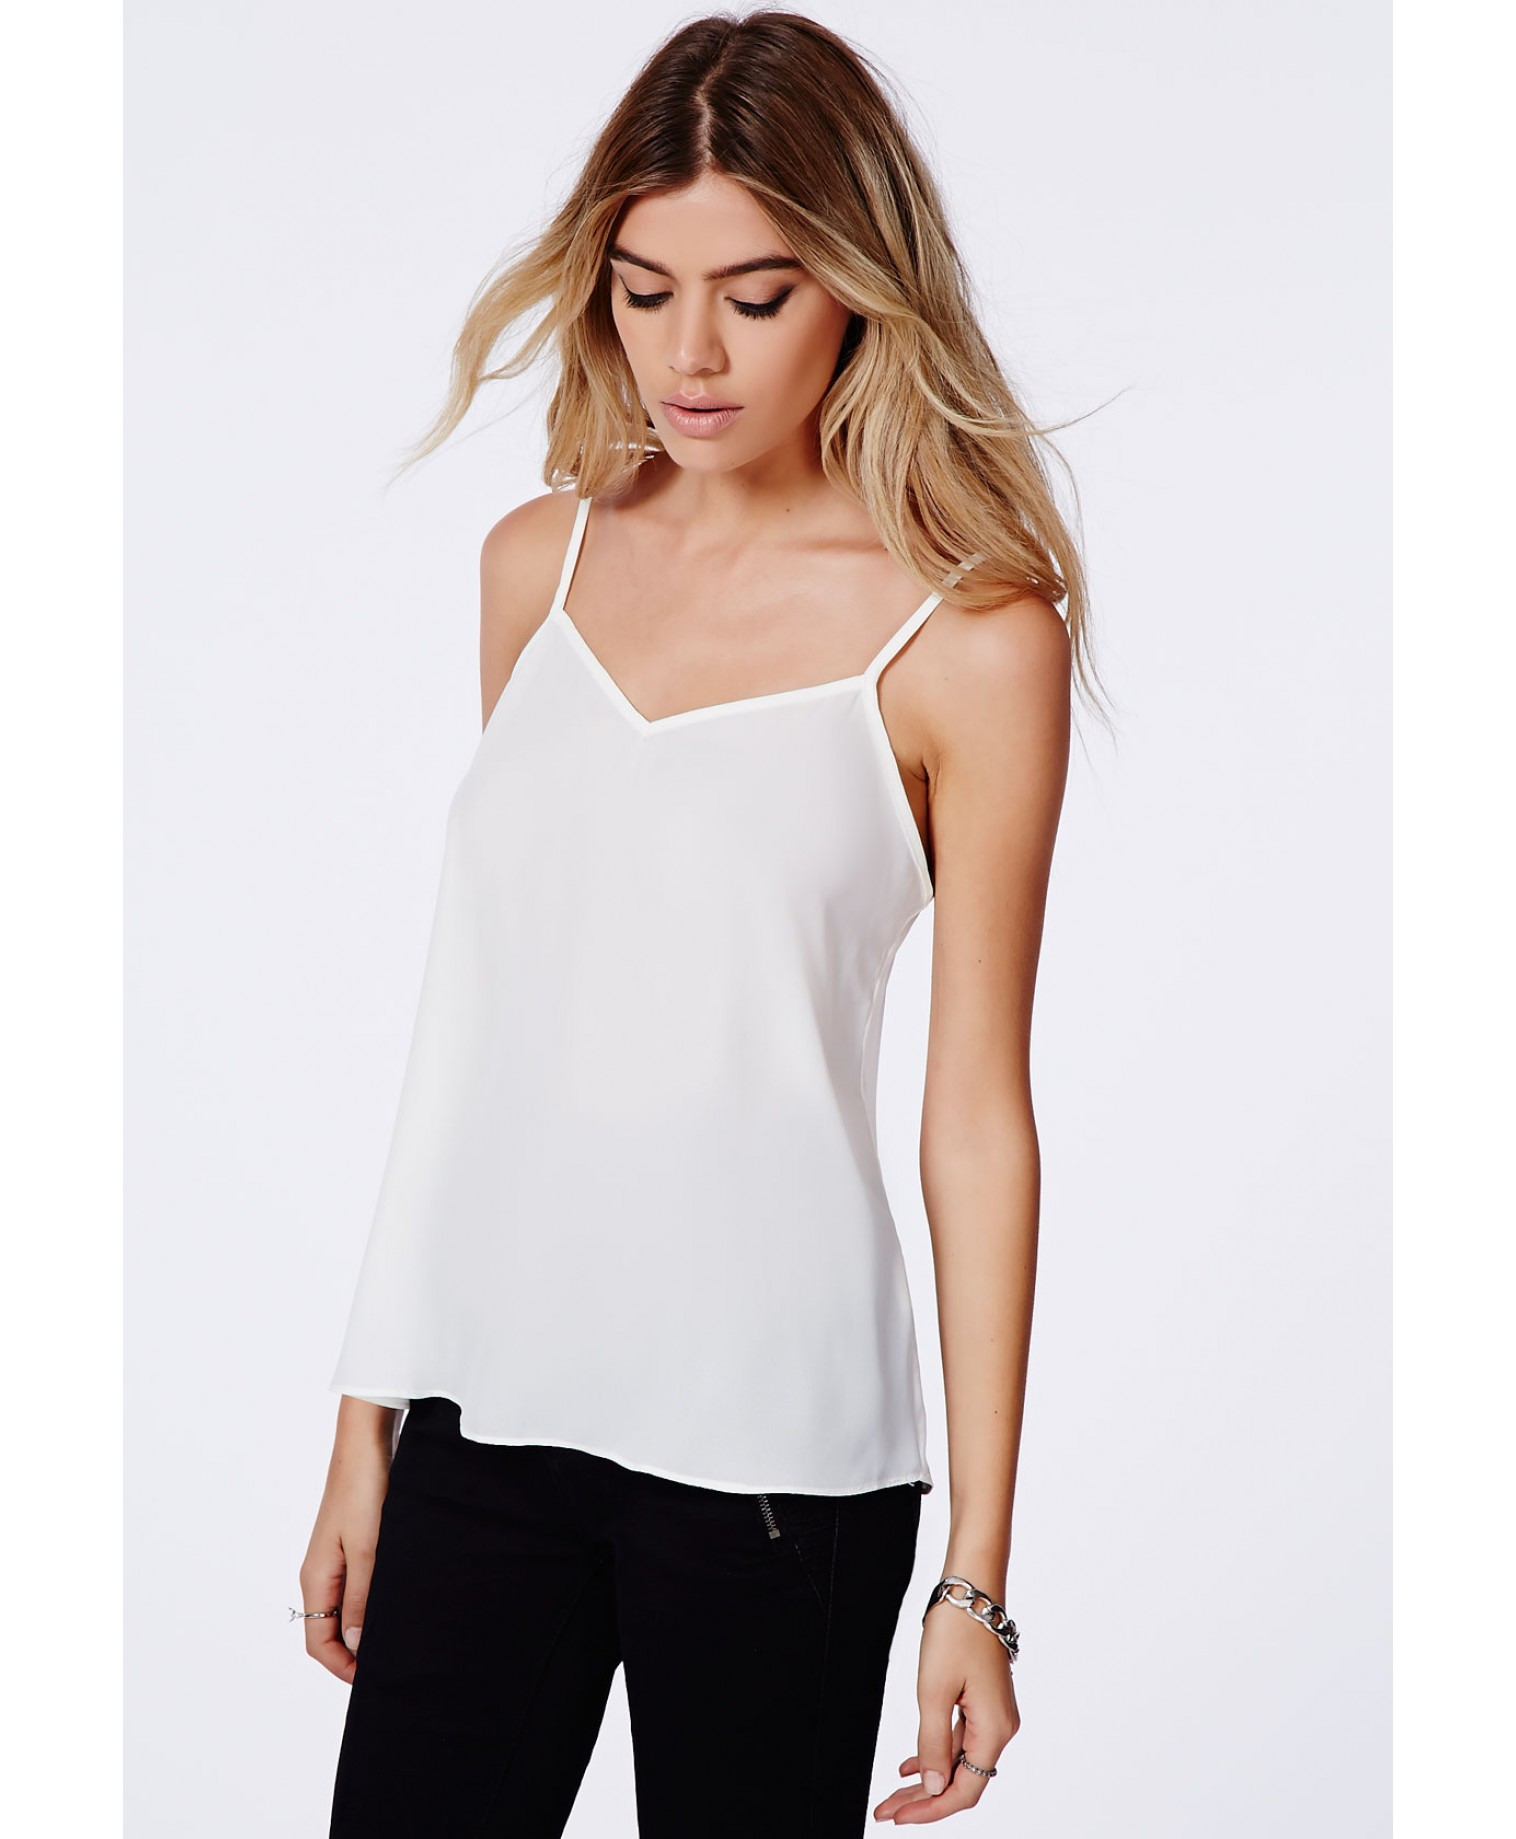 Missguided Samala Chiffon Cami Top In White in White - Lyst e1c9d4ee7